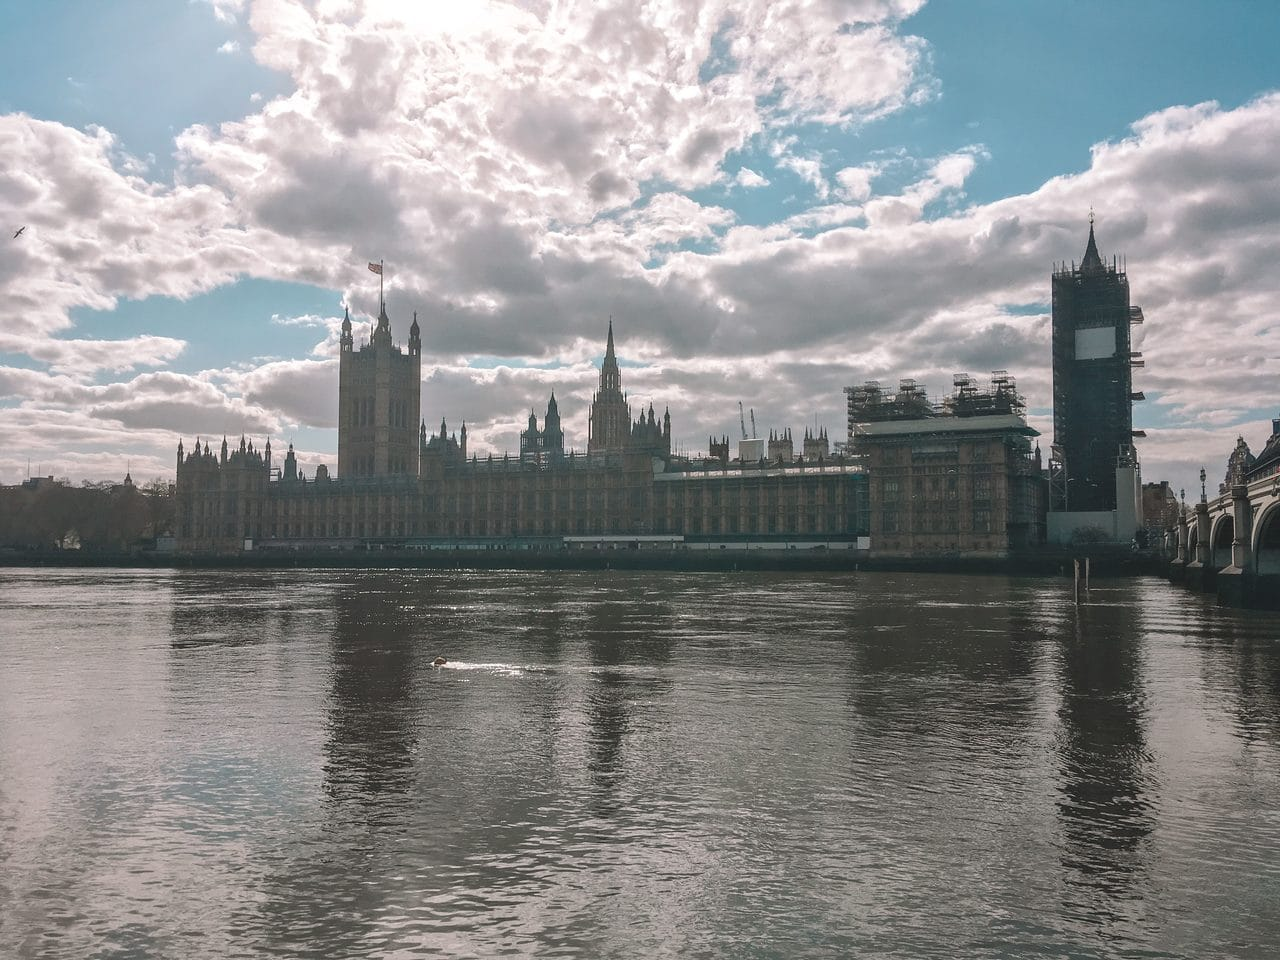 Houses of Parliament in London, England, in April 2020